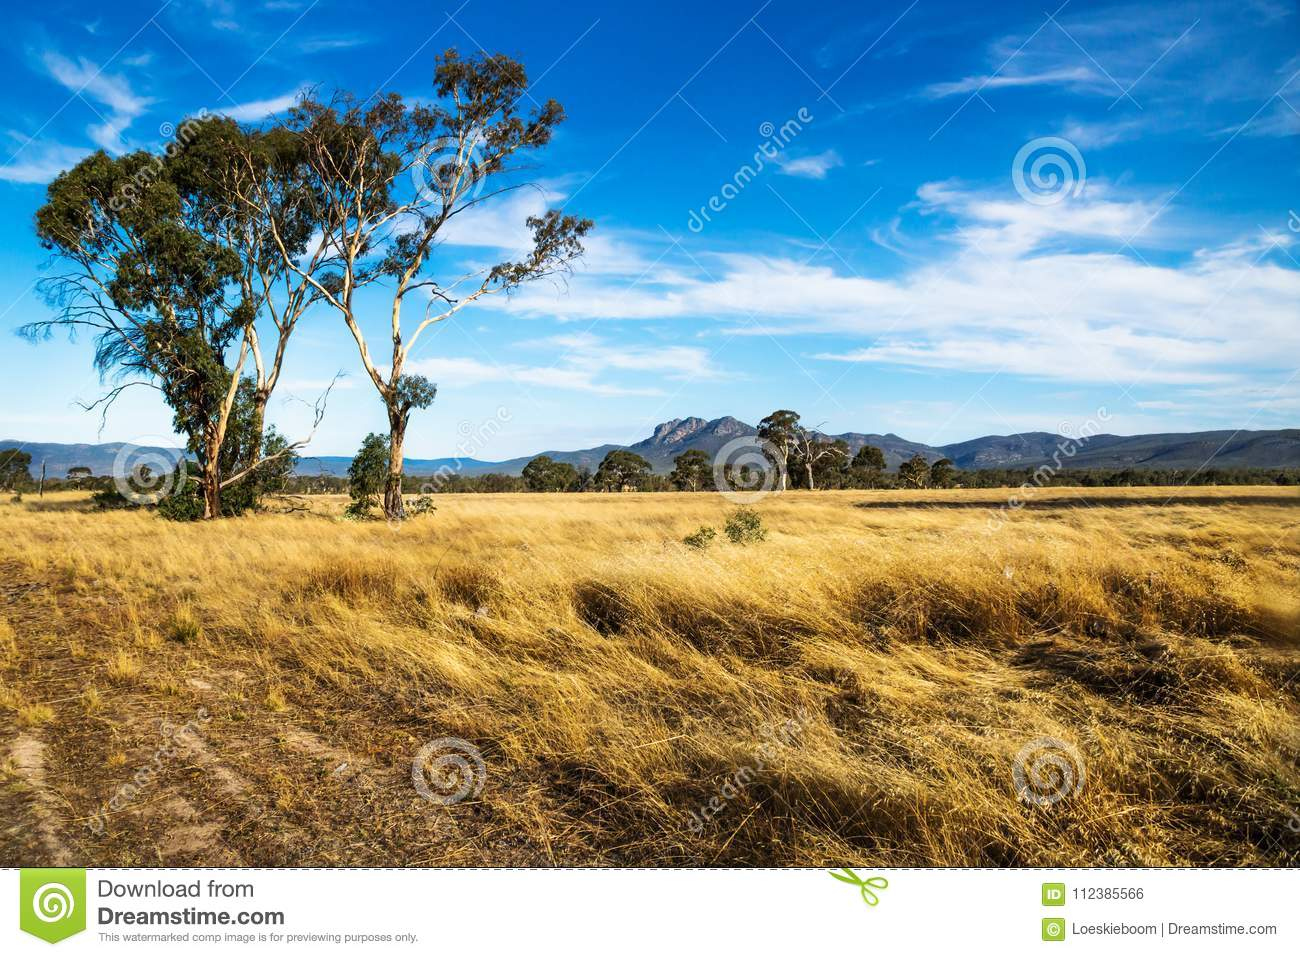 Golden grassland landscape in the bush with Grampians mountains in the background, Victoria, Australia